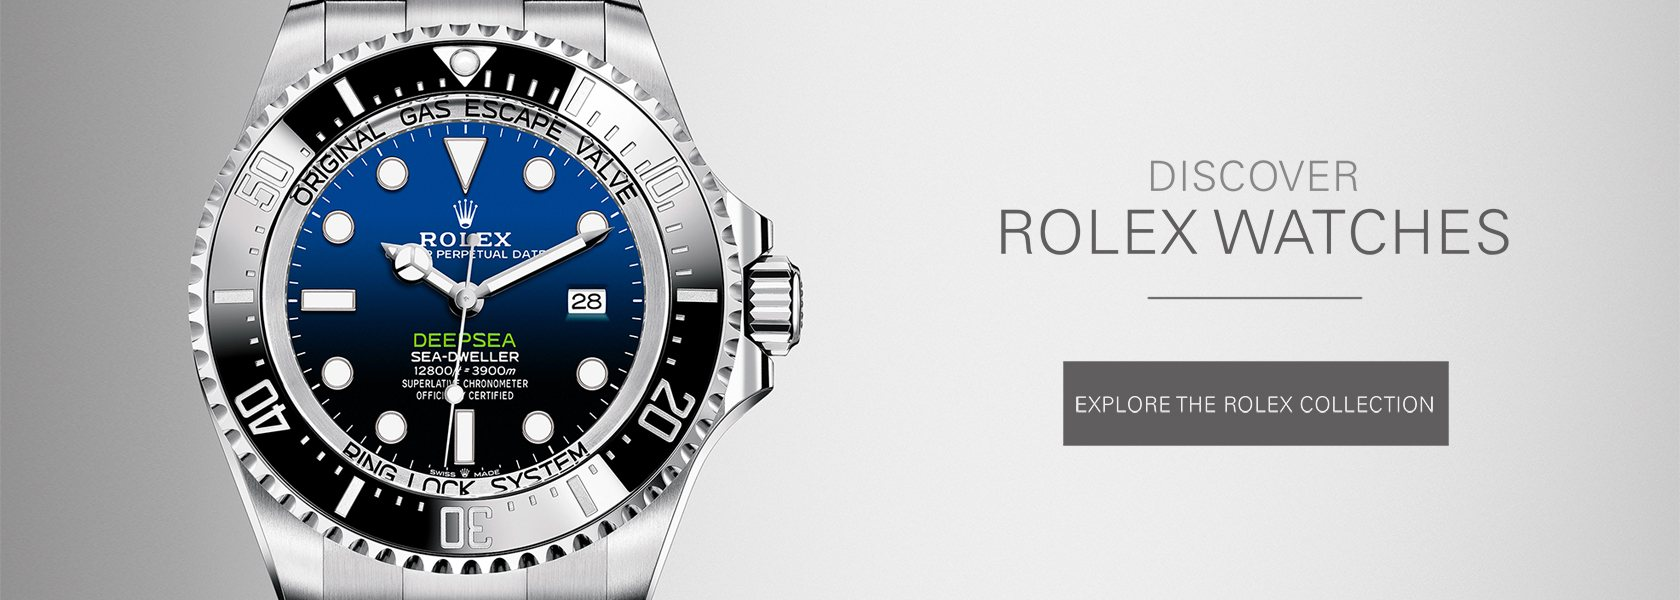 View Rolex Collection